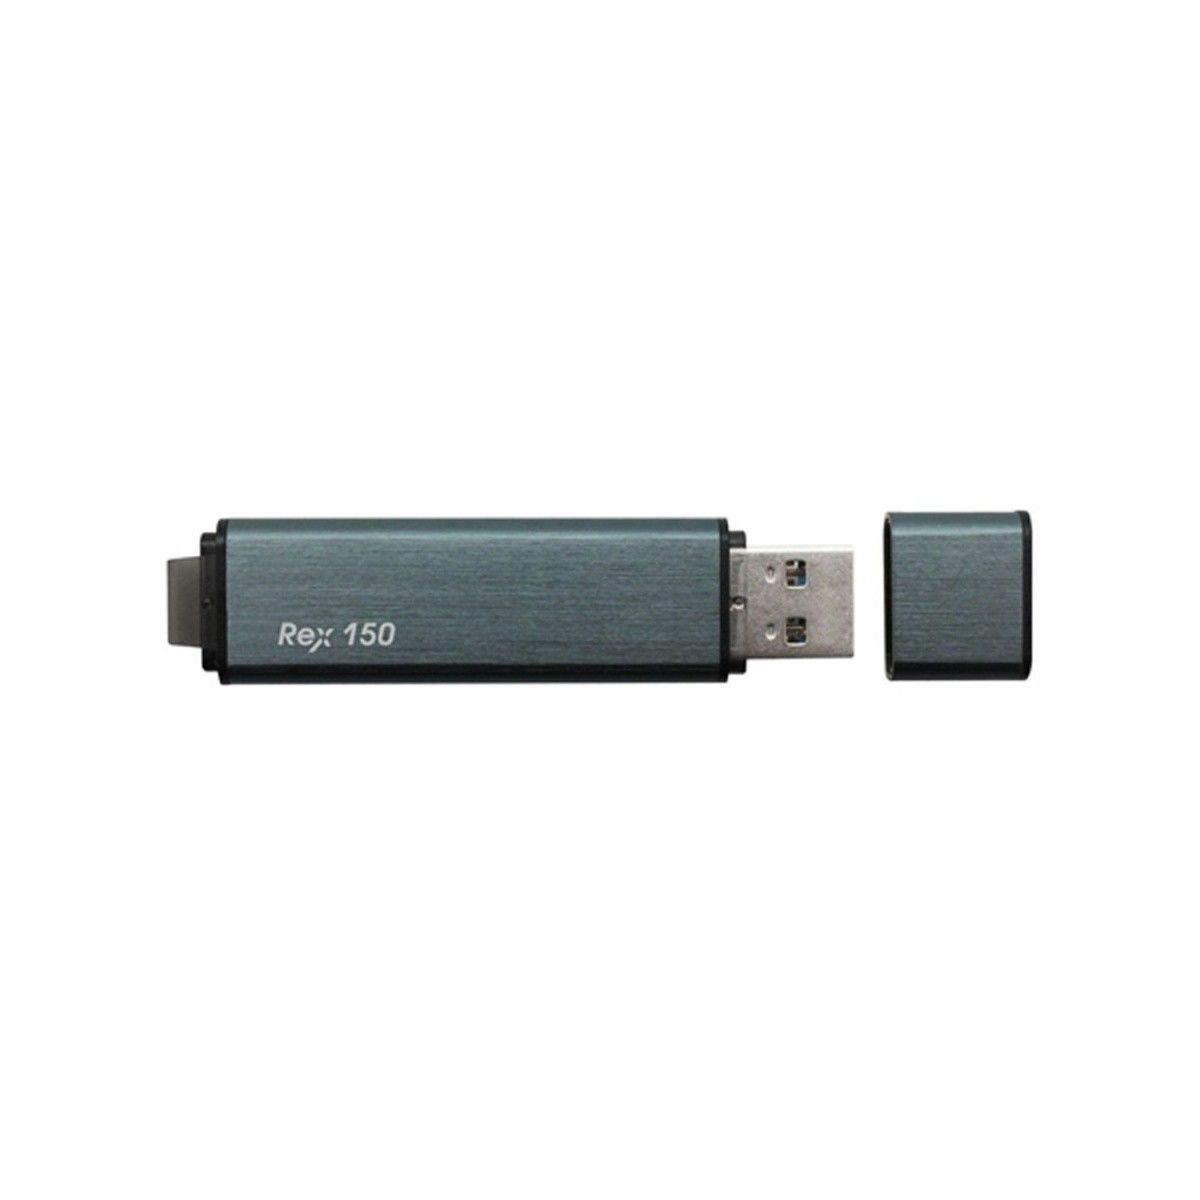 Pretec i-Disk REX150 - 128GB - USB 3.0 SuperSpeed (up to 120MB/s)